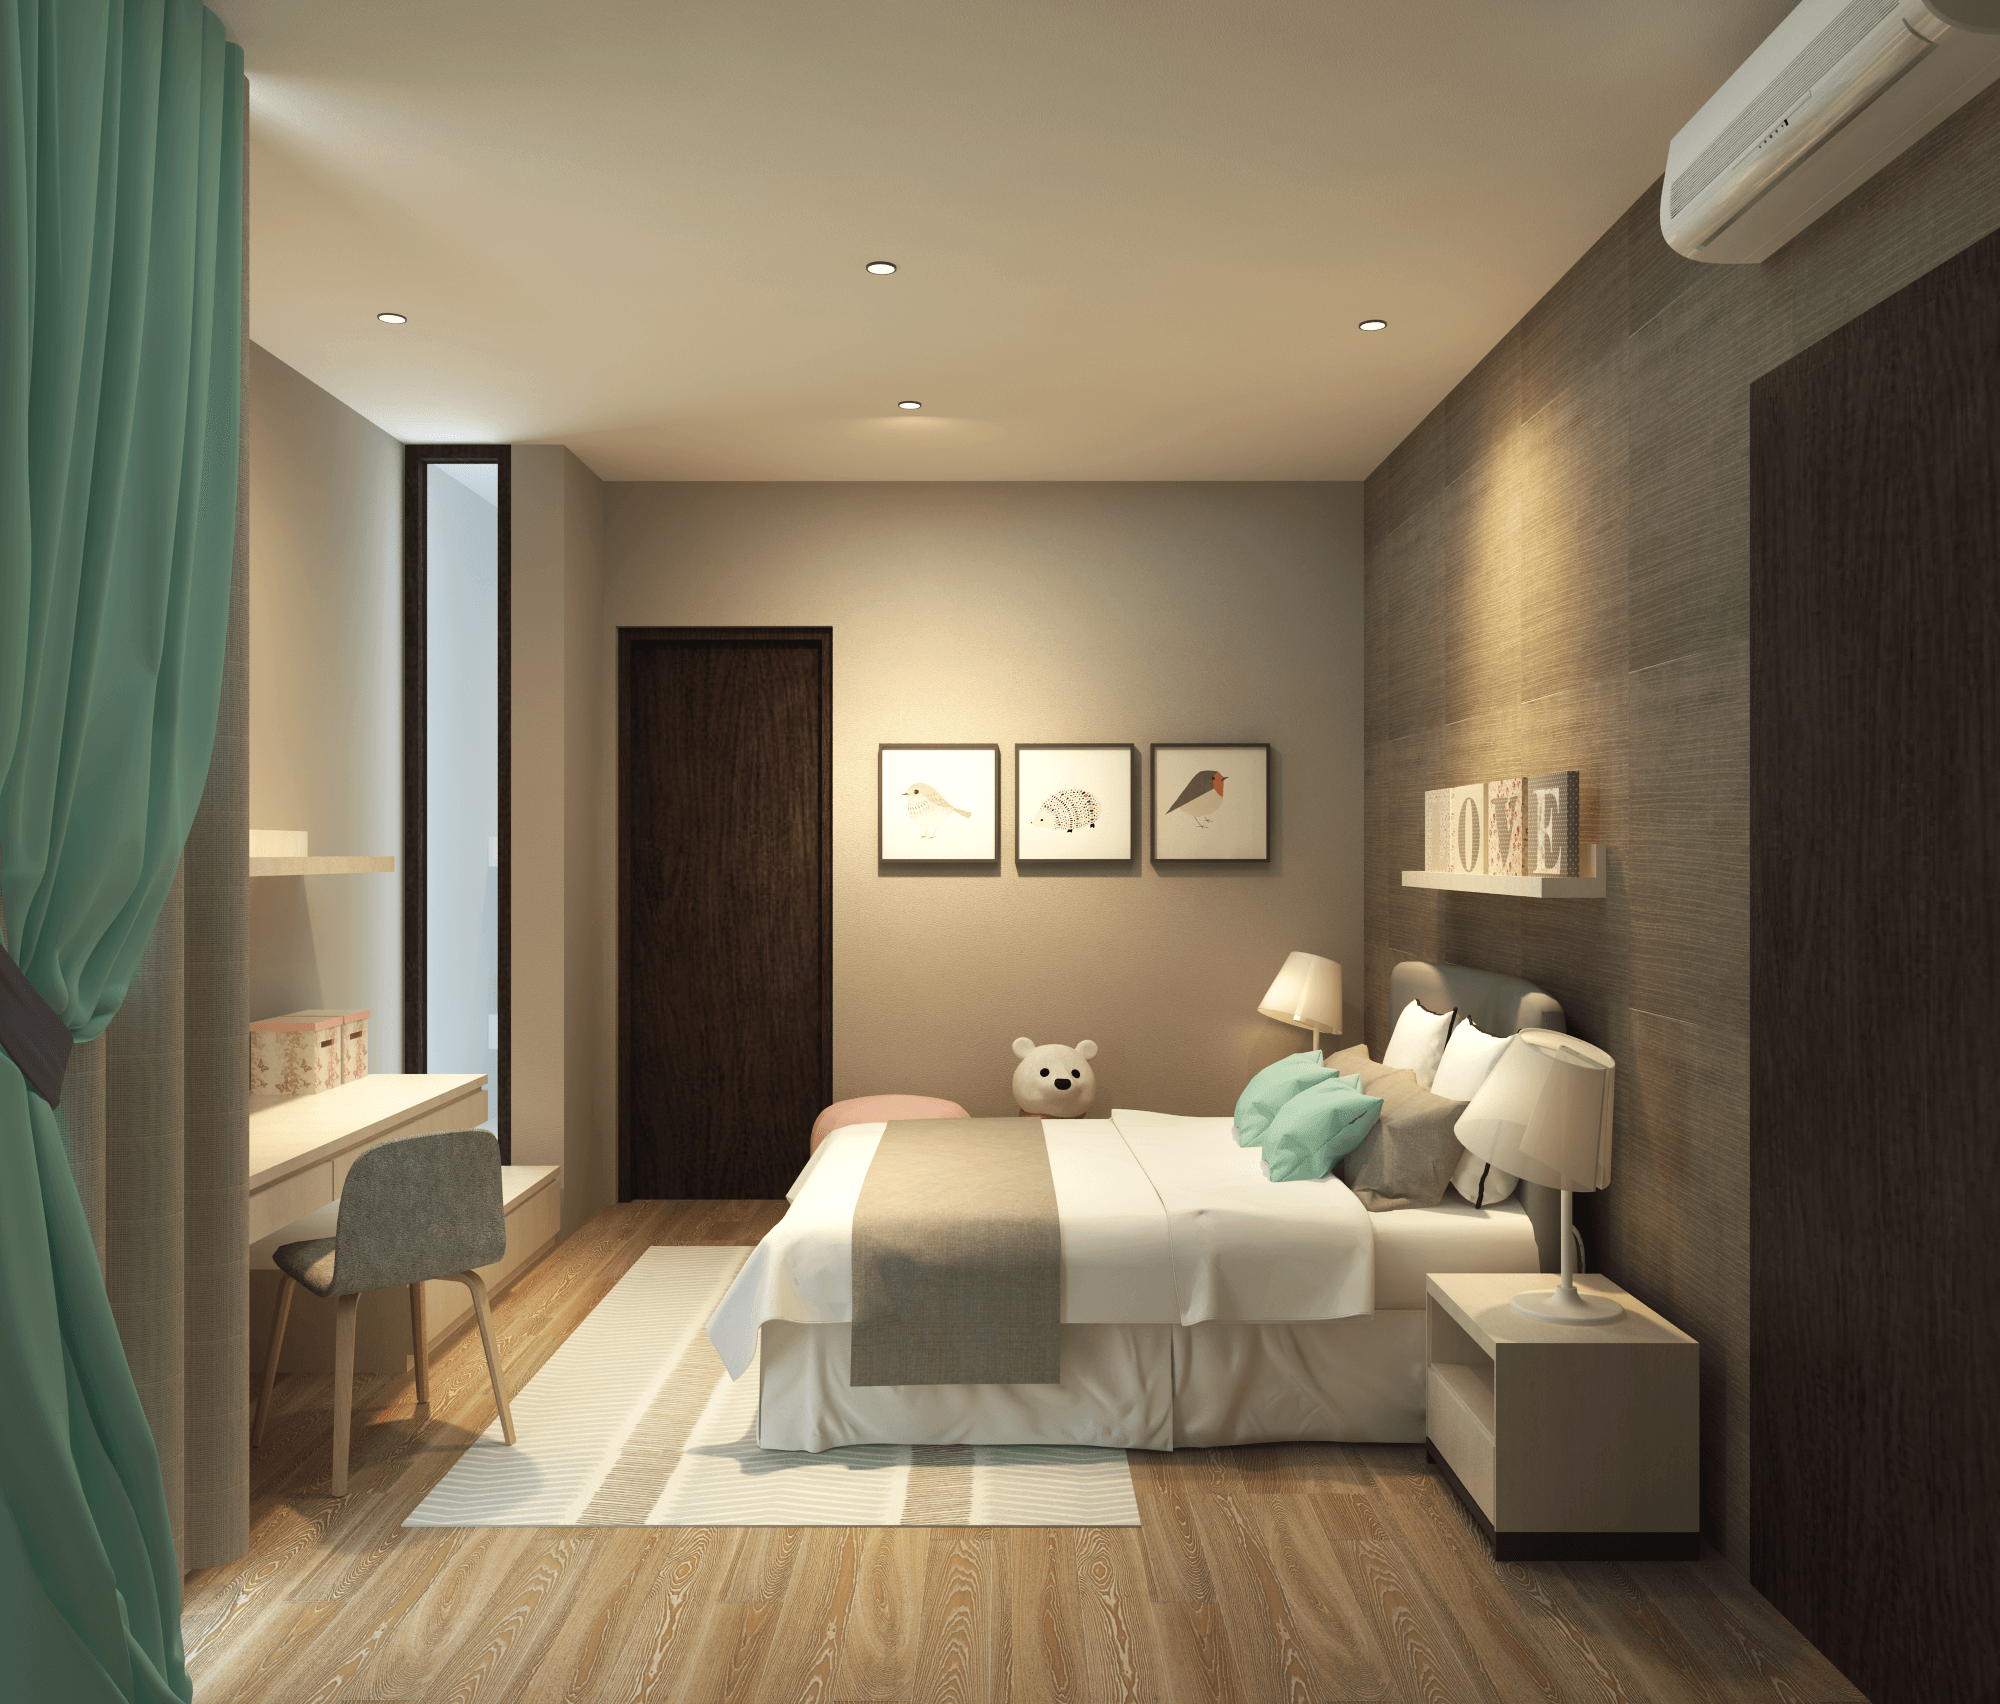 Pt. Modula The Canvas House Pondok Indah, Jakarta Pondok Indah, Jakarta The Children Bedroom Modern  26645